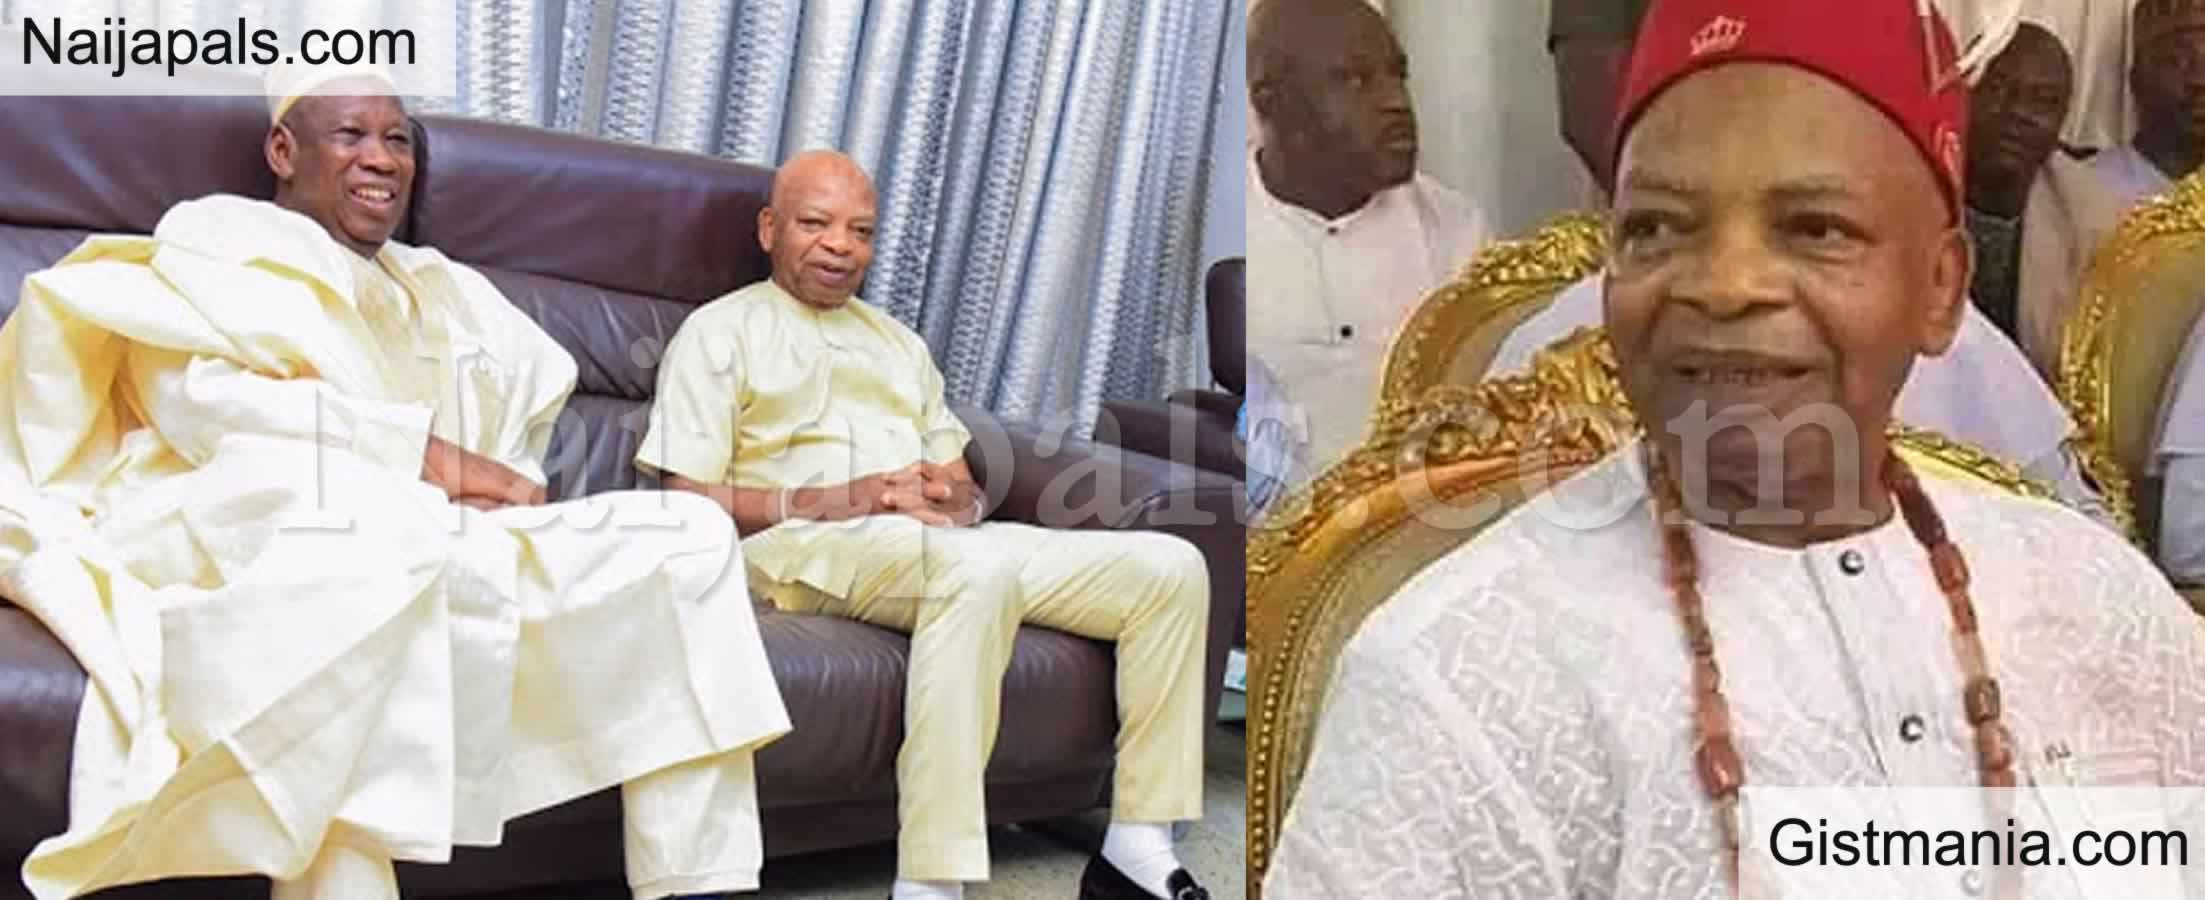 <img alt='.' class='lazyload' data-src='https://img.gistmania.com/emot/comment.gif' /> <b>Why an Igbo Man Cannot Become Nigeria's President</b> - Billionaire Oil Magnate, Arthur Eze